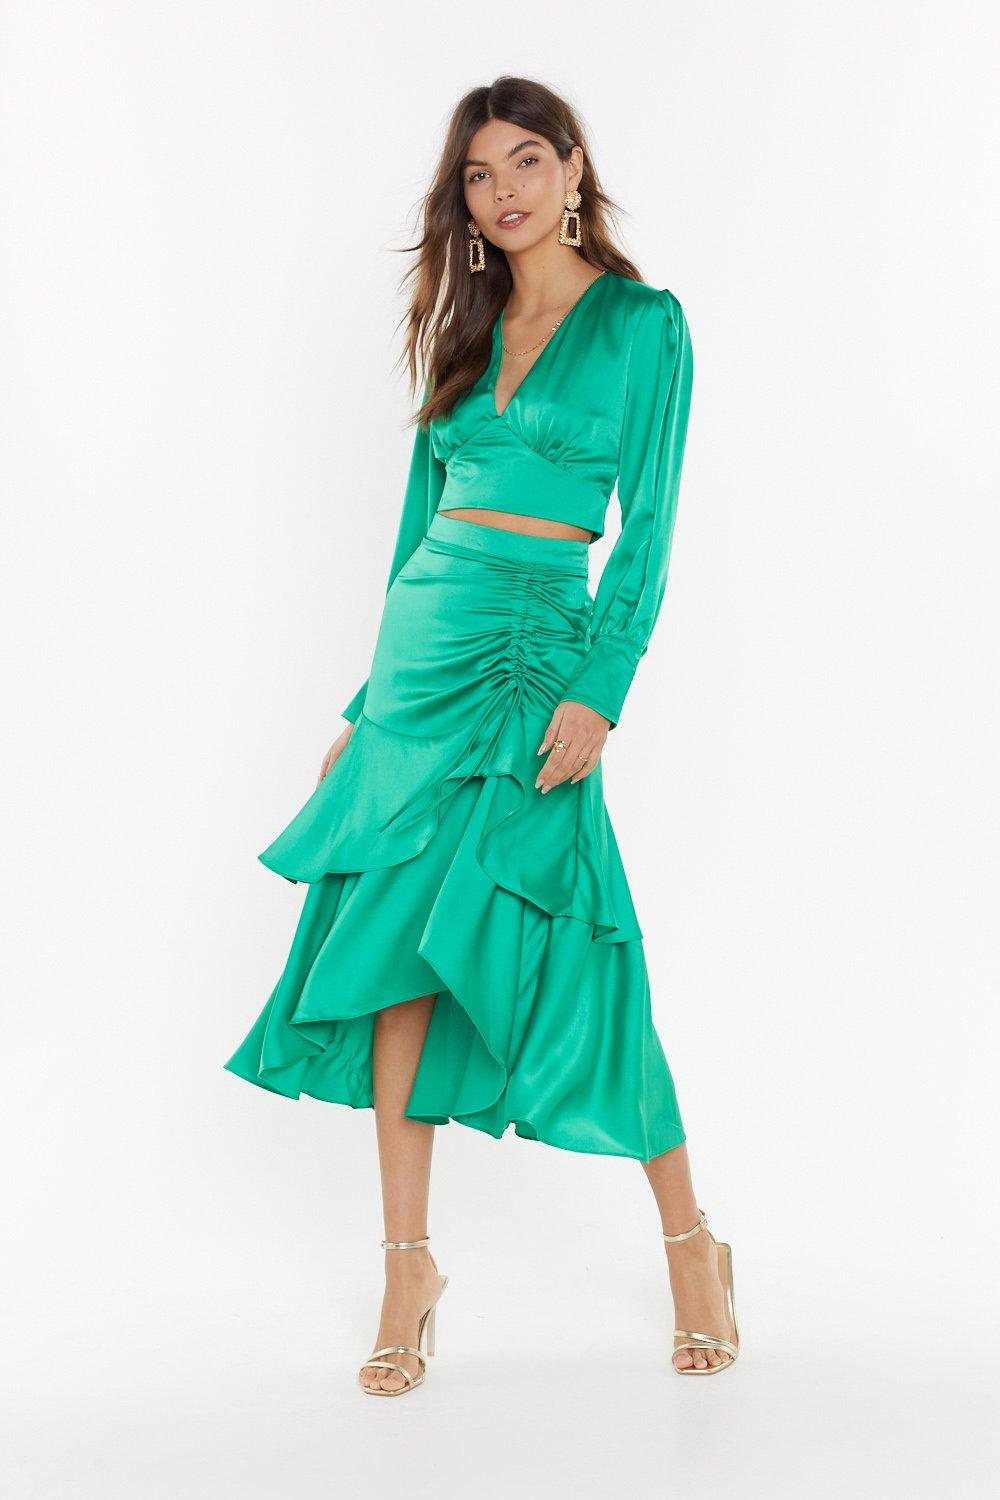 6c2d752e76b5 Waves of Emotion Satin Midi Skirt | Shop Clothes at Nasty Gal!